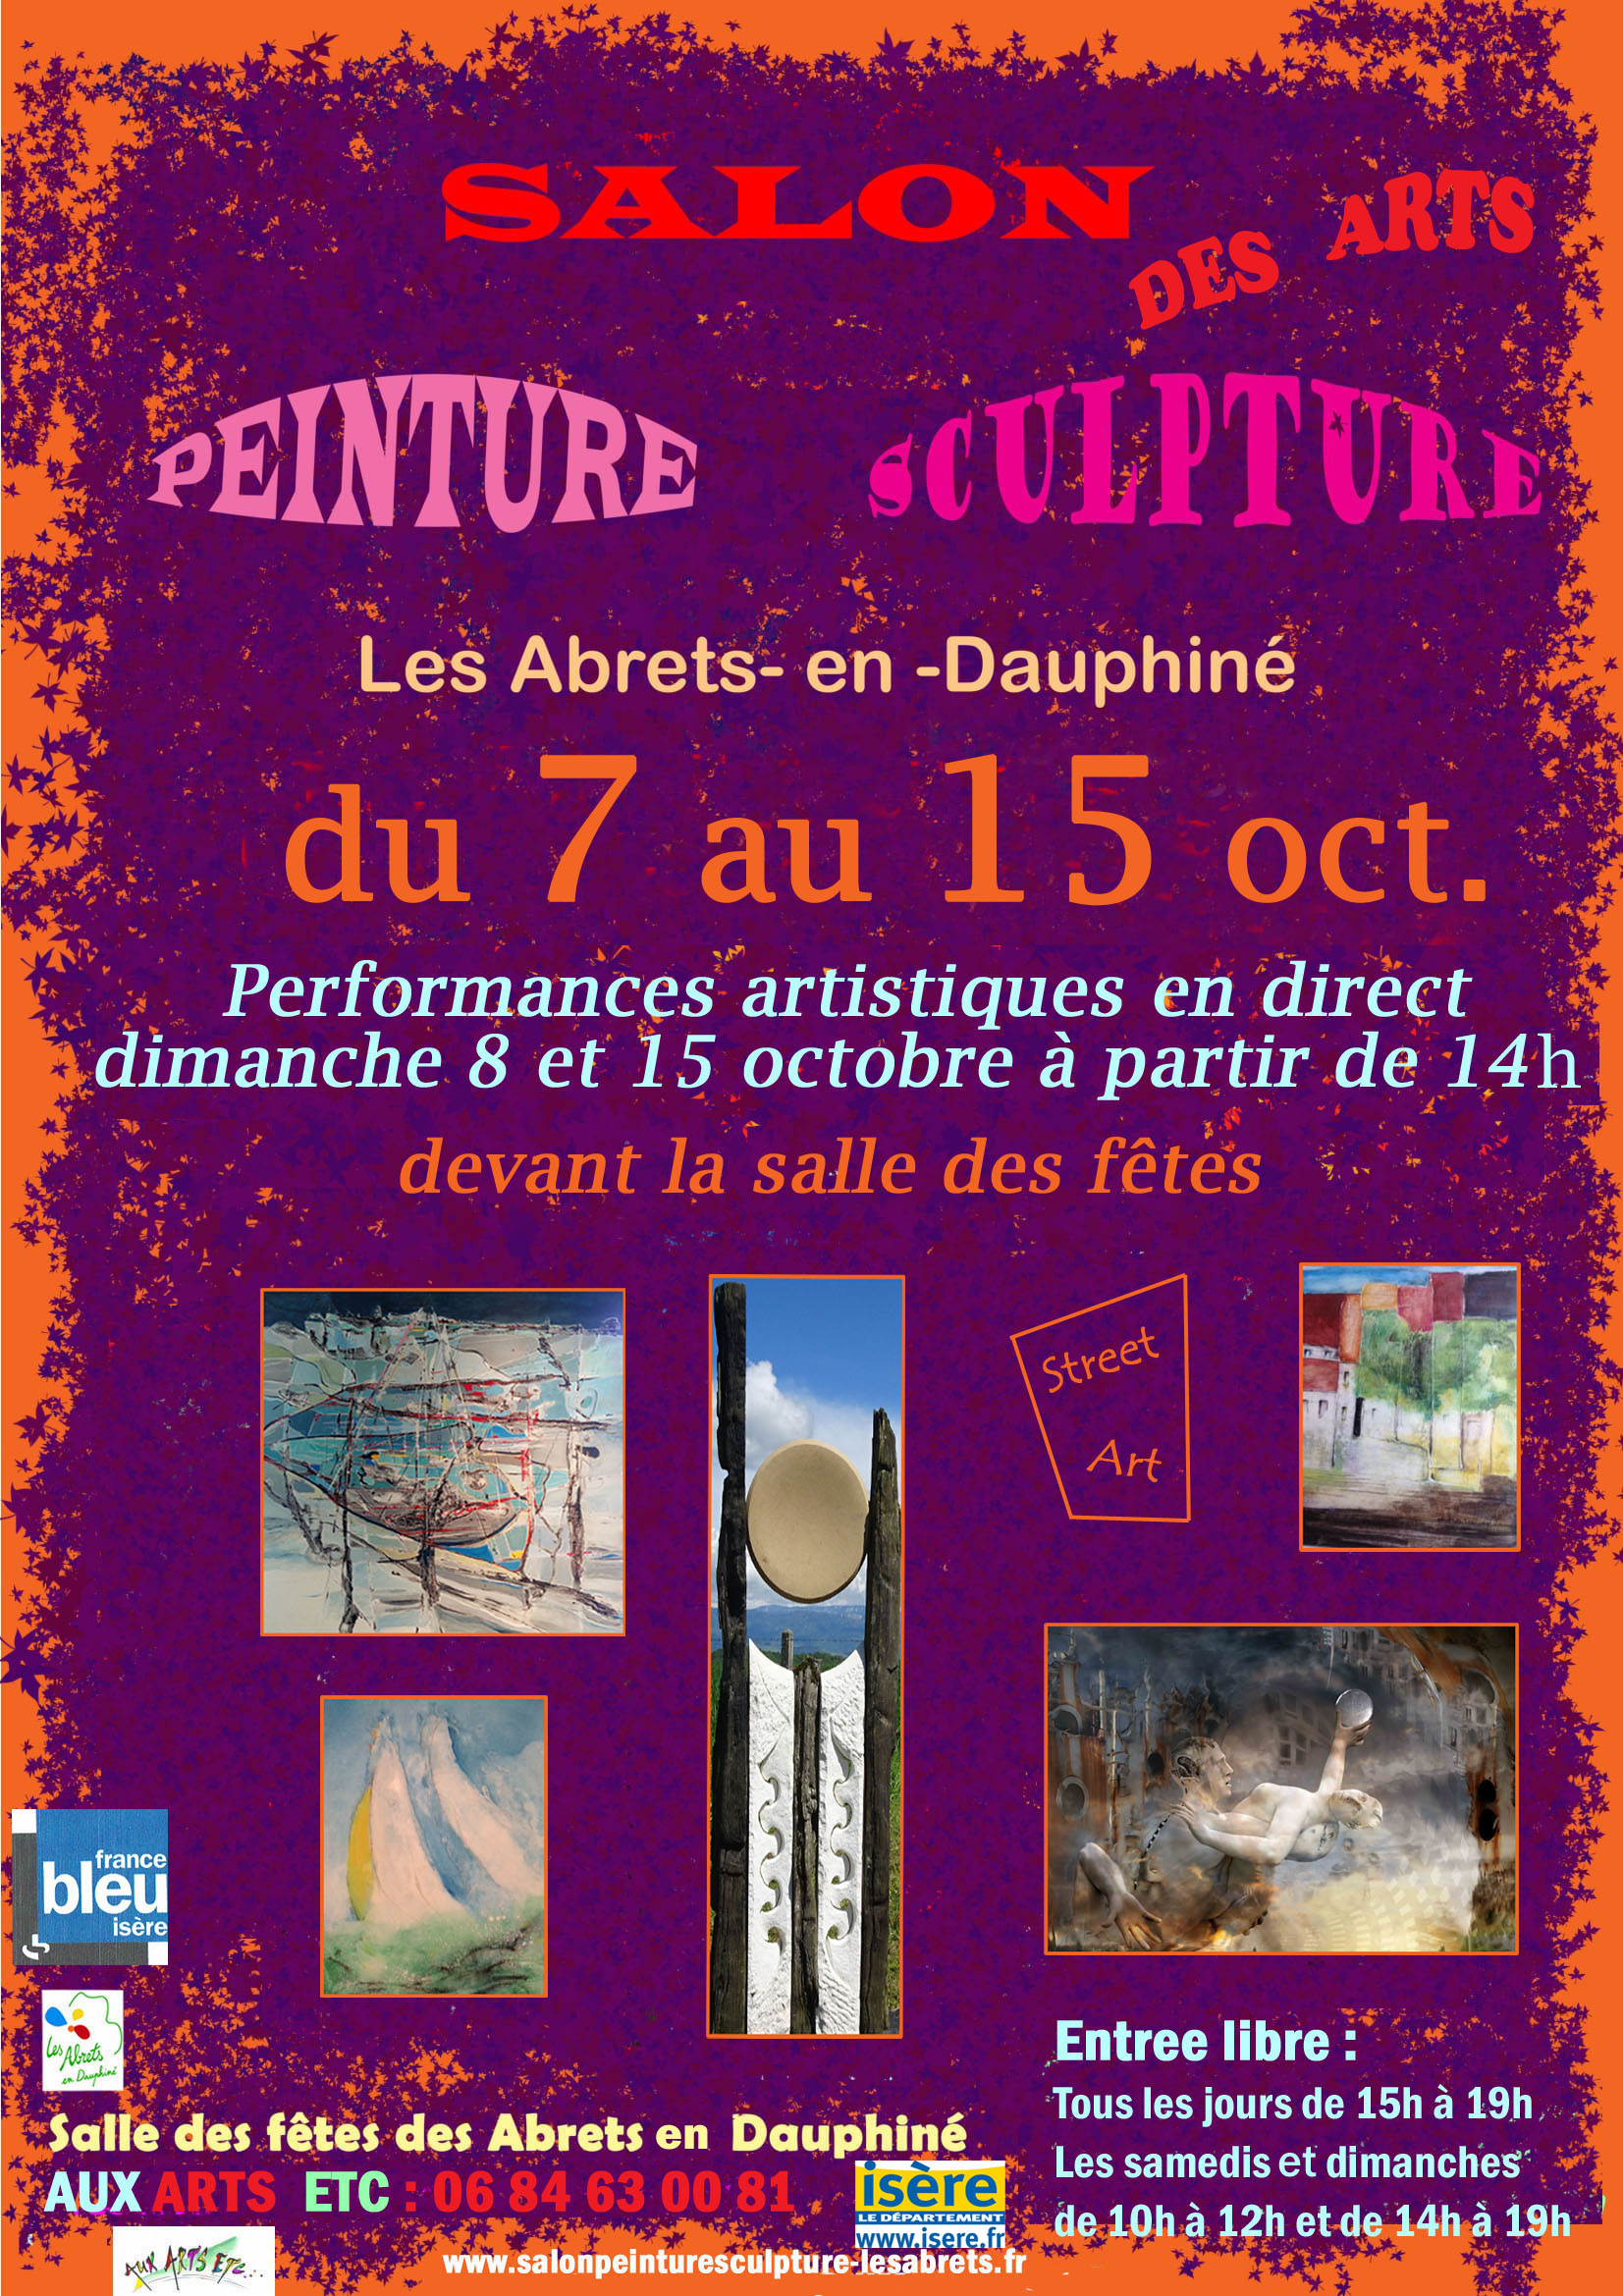 affiche salon term12 copie0001 copie